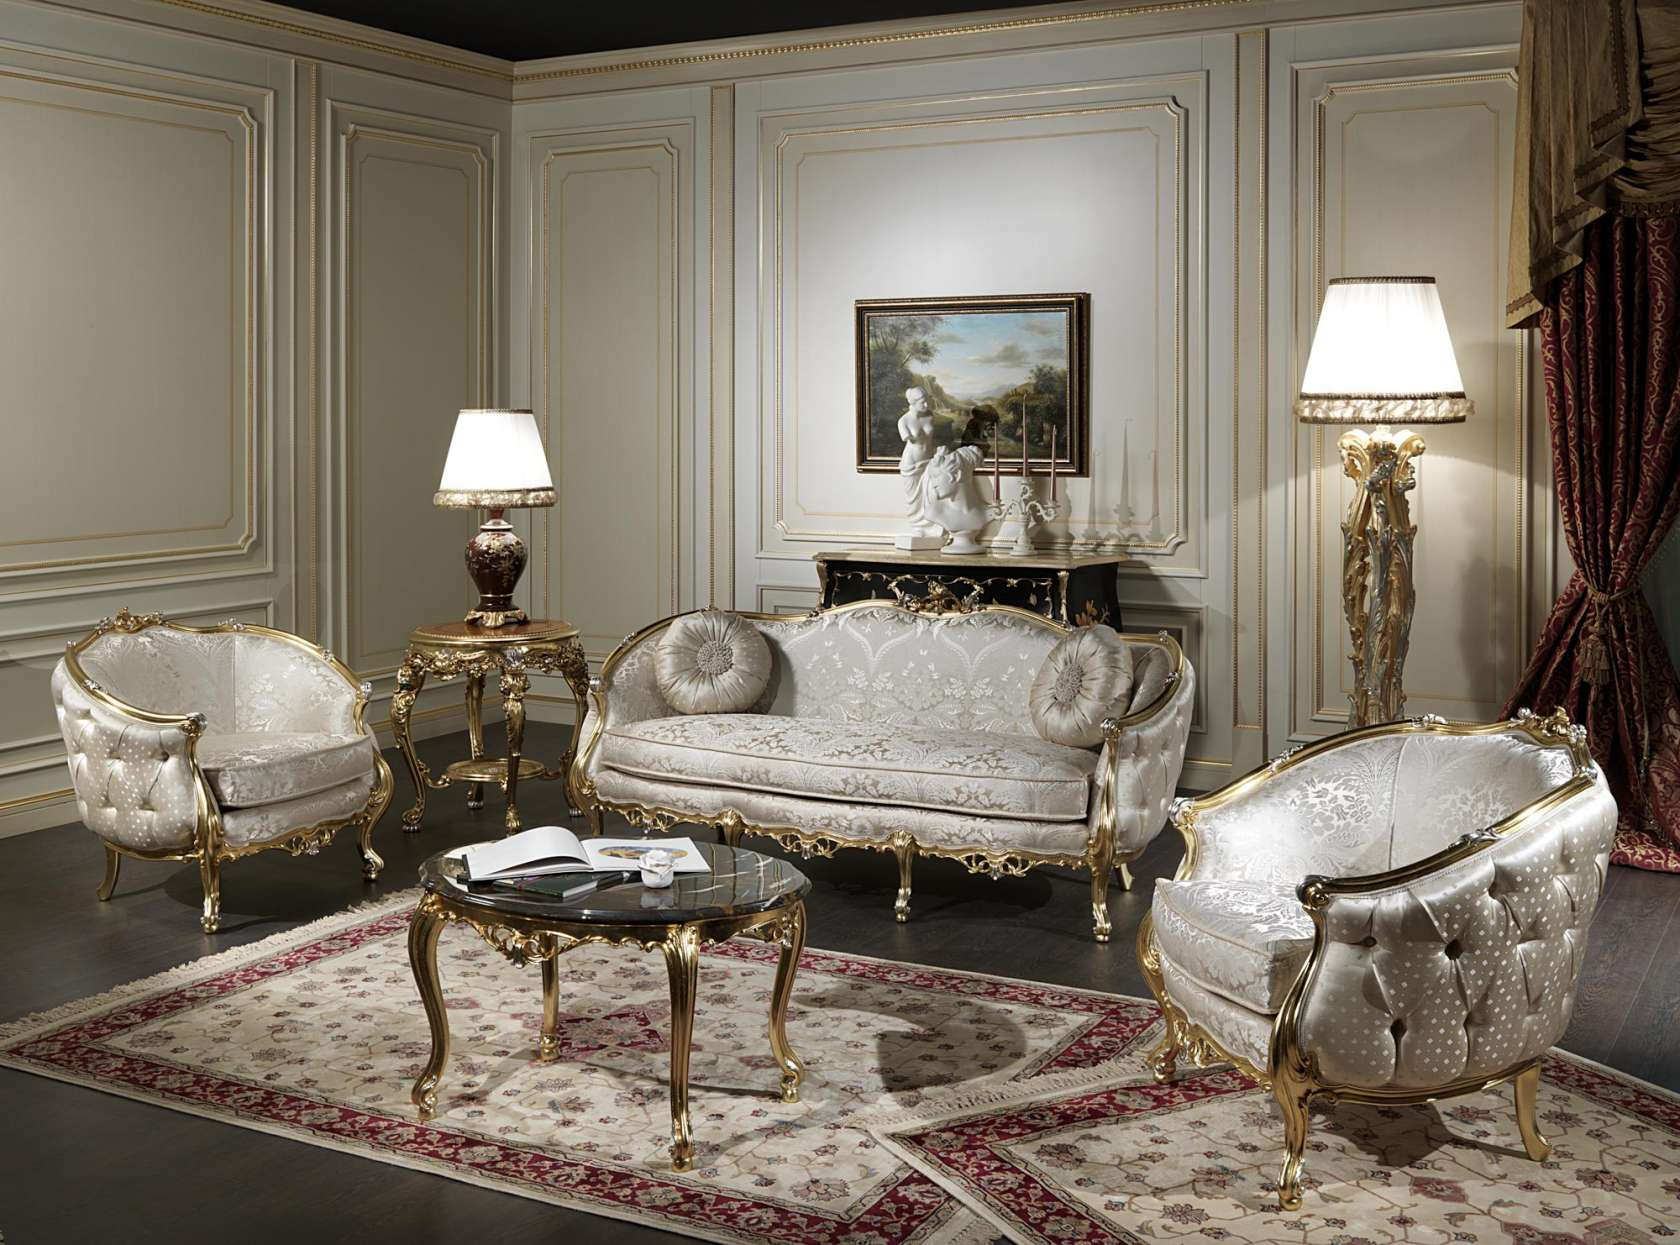 Stunning Classic Living Room Furniture Images - Home Design Ideas ...